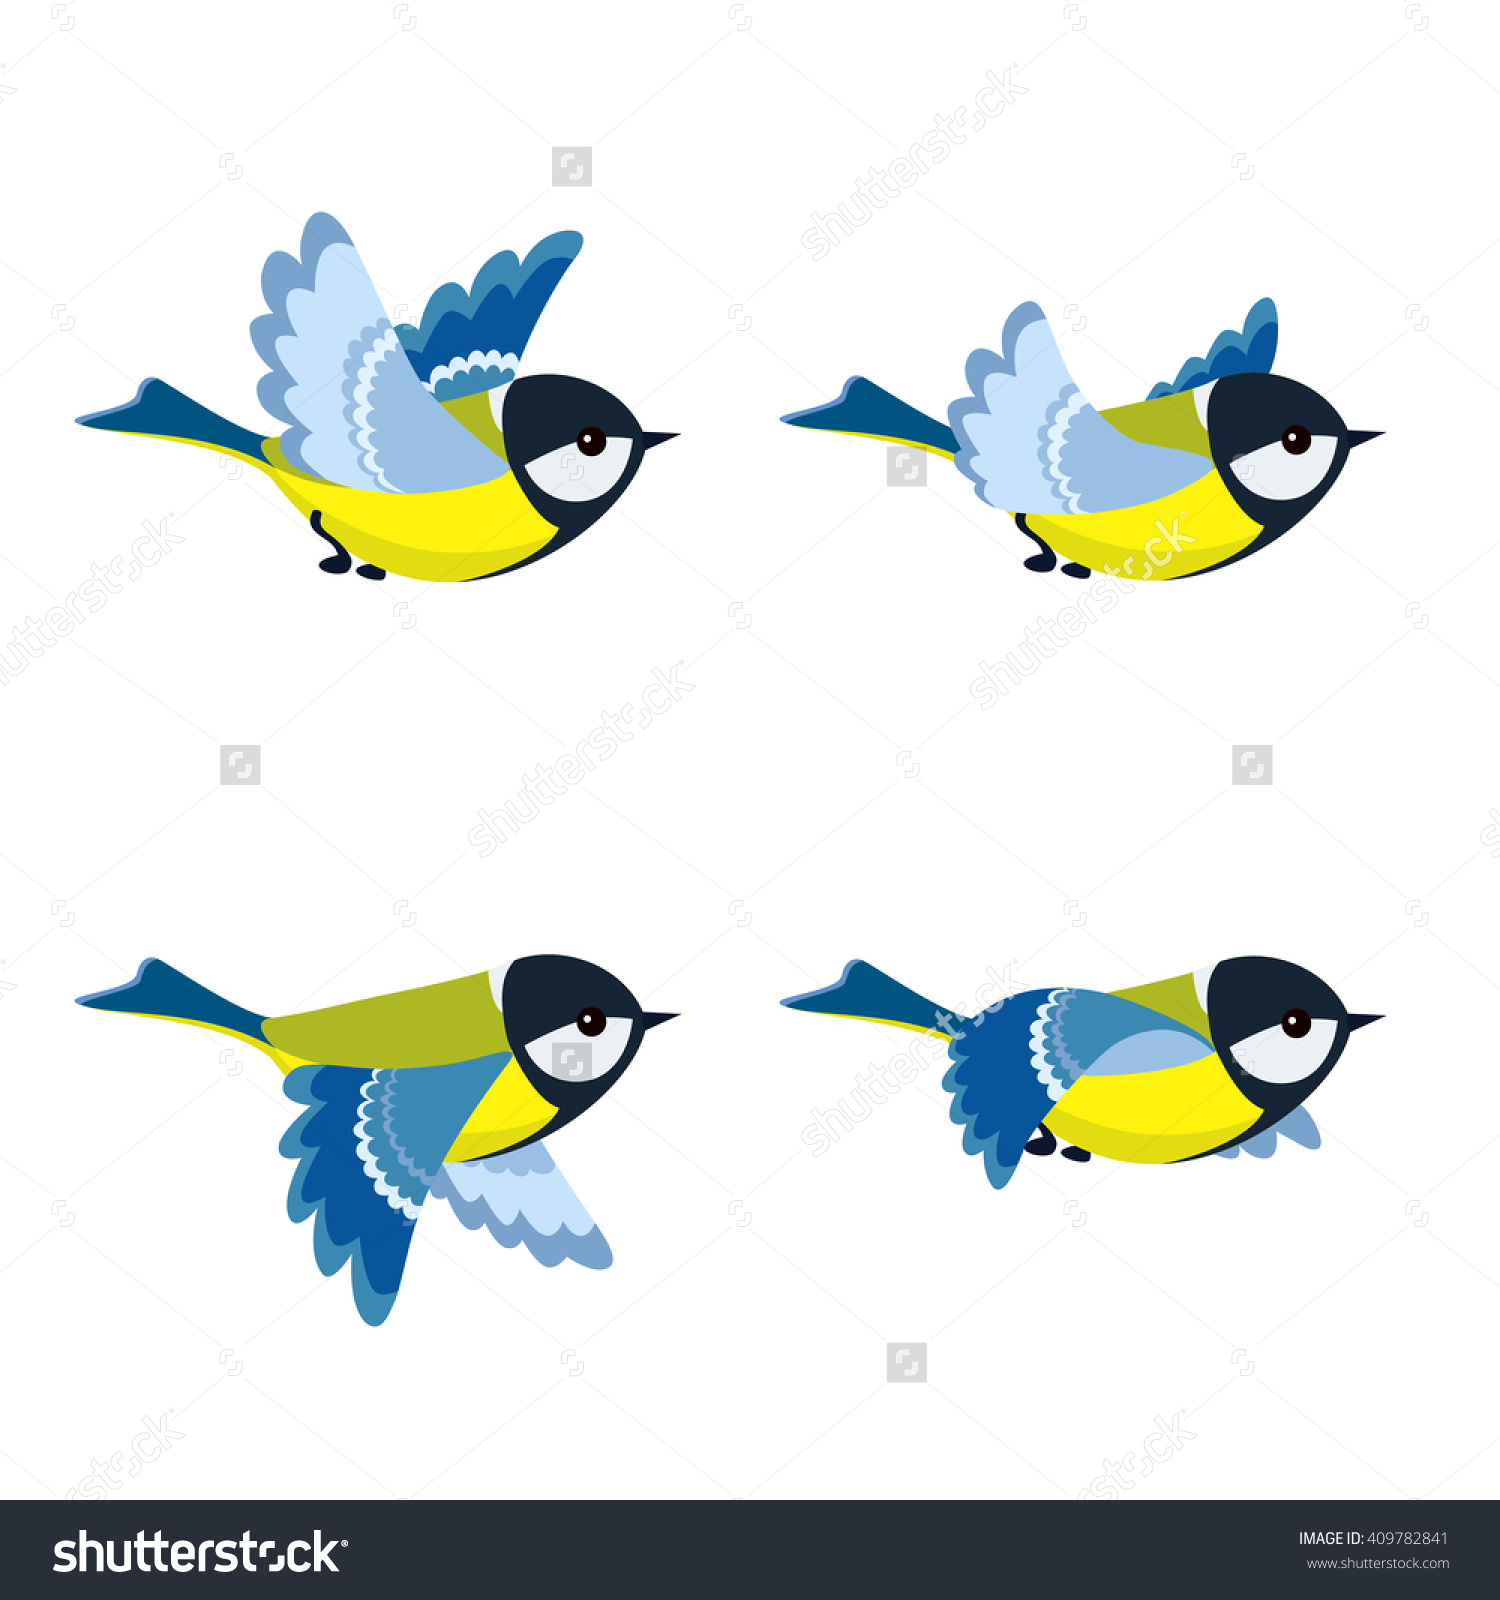 Vector Illustration Cartoon Flying Great Tit Stock Vector.